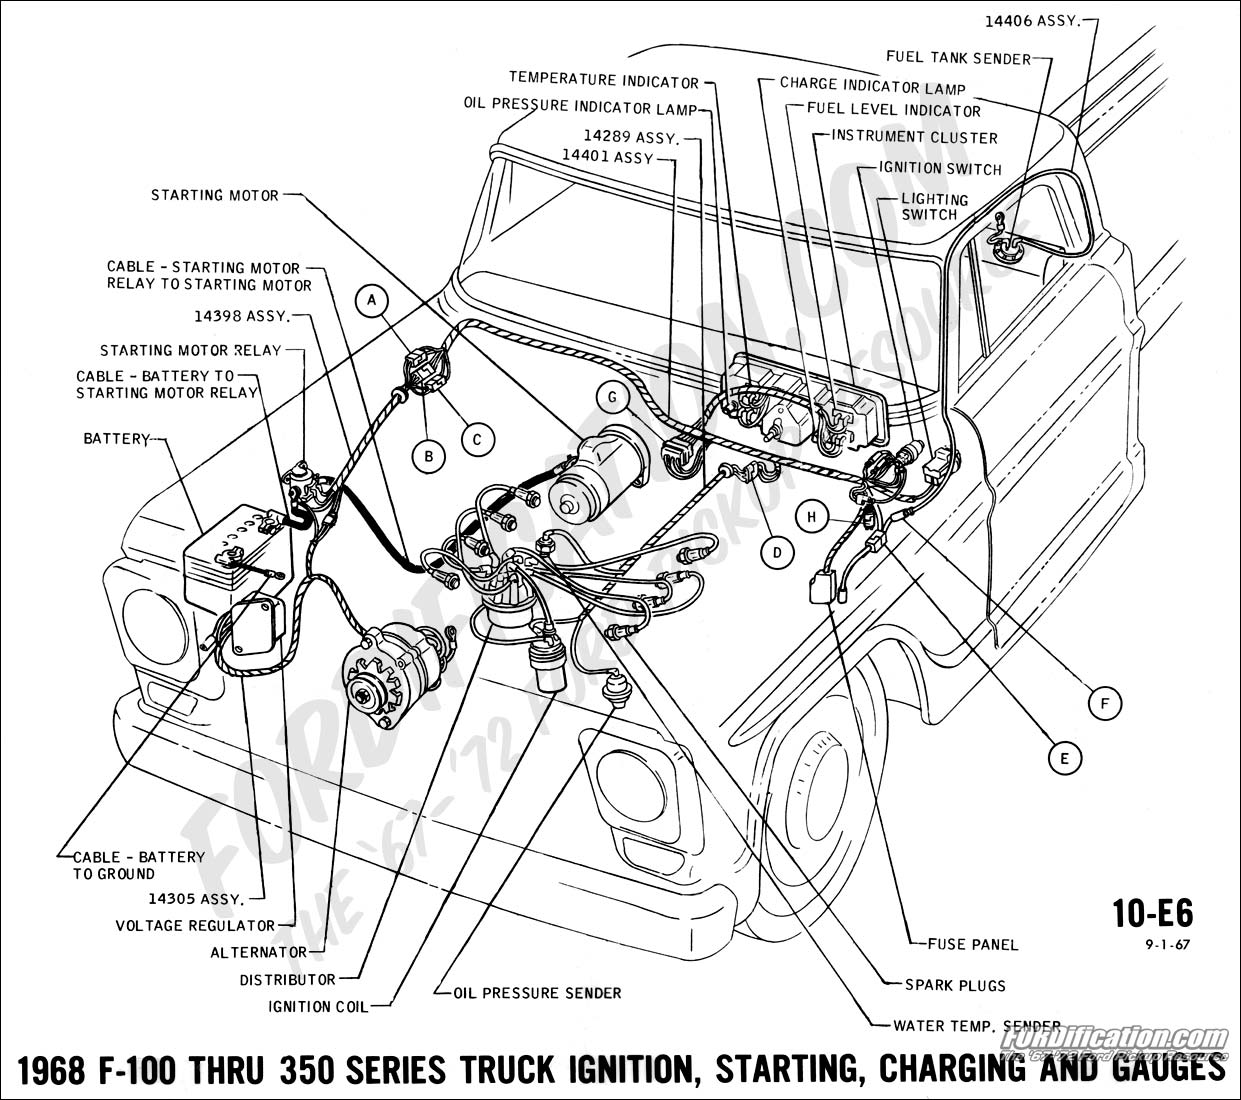 68 Ford F100 Wiring Diagram, 68, Free Engine Image For